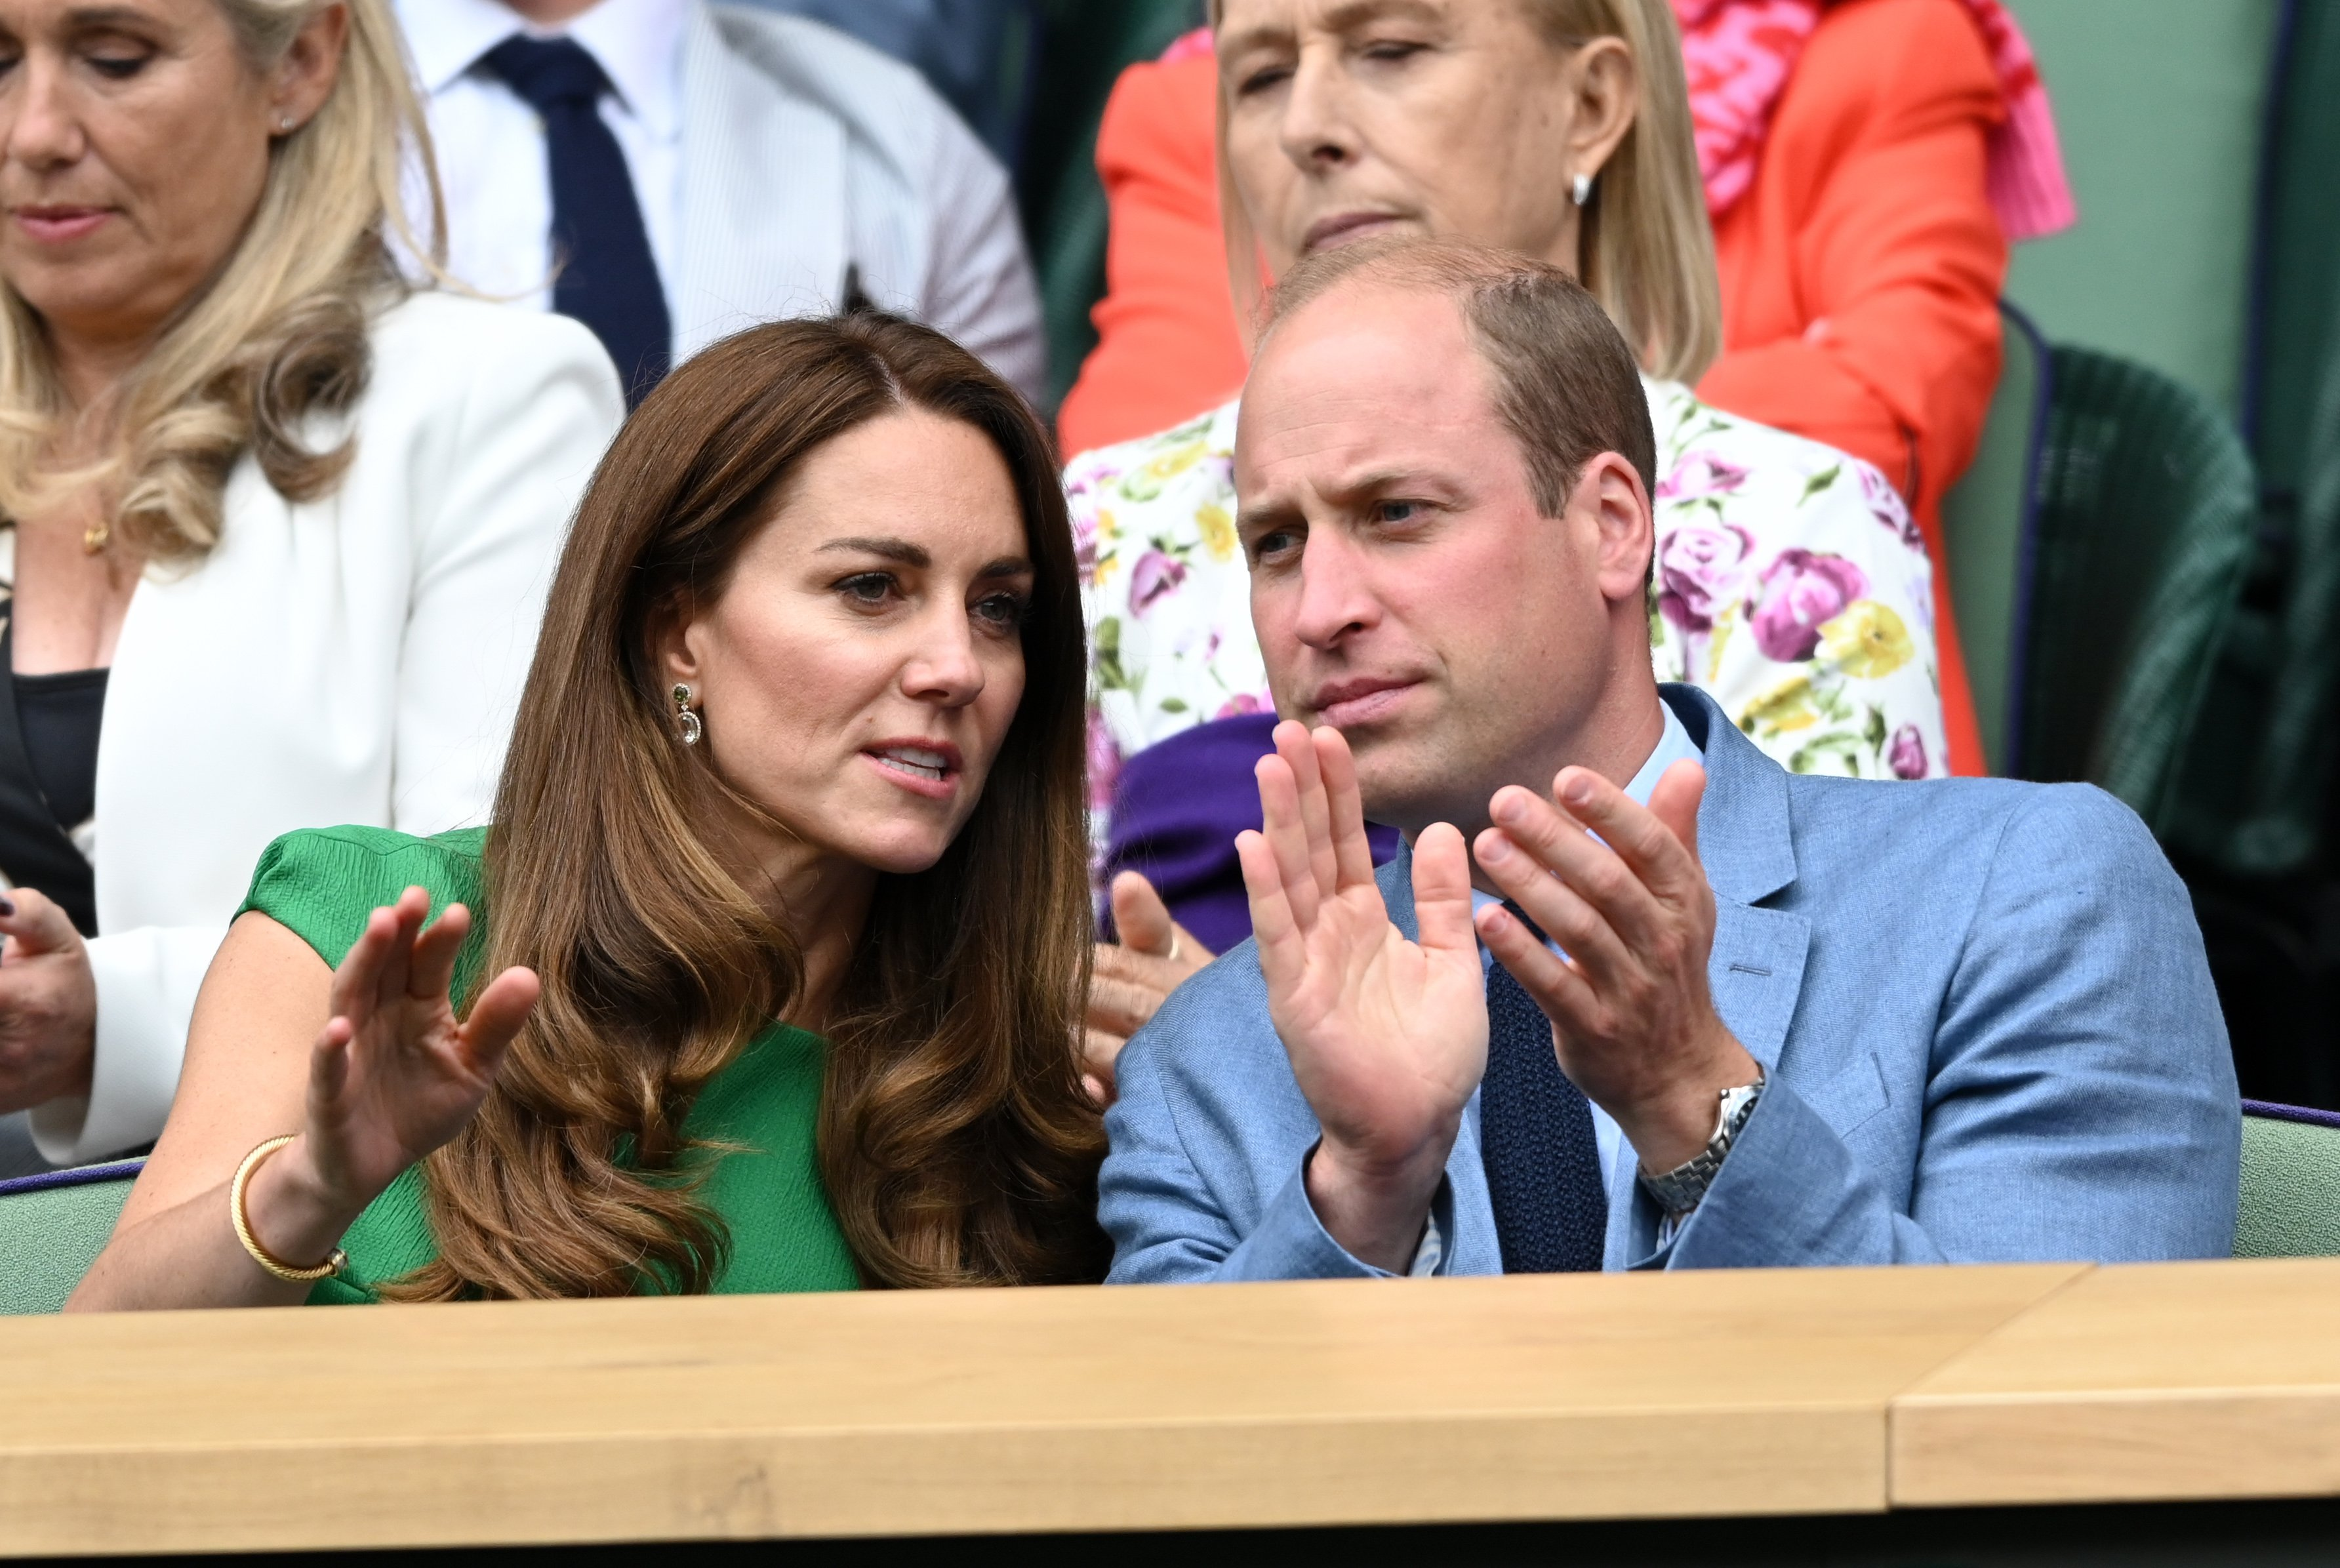 Prince William, and Catherine attend the Wimbledon Tennis Championships at the All England Lawn Tennis and Croquet Club on July 10, 2021 in London, England. | Source: Getty Images